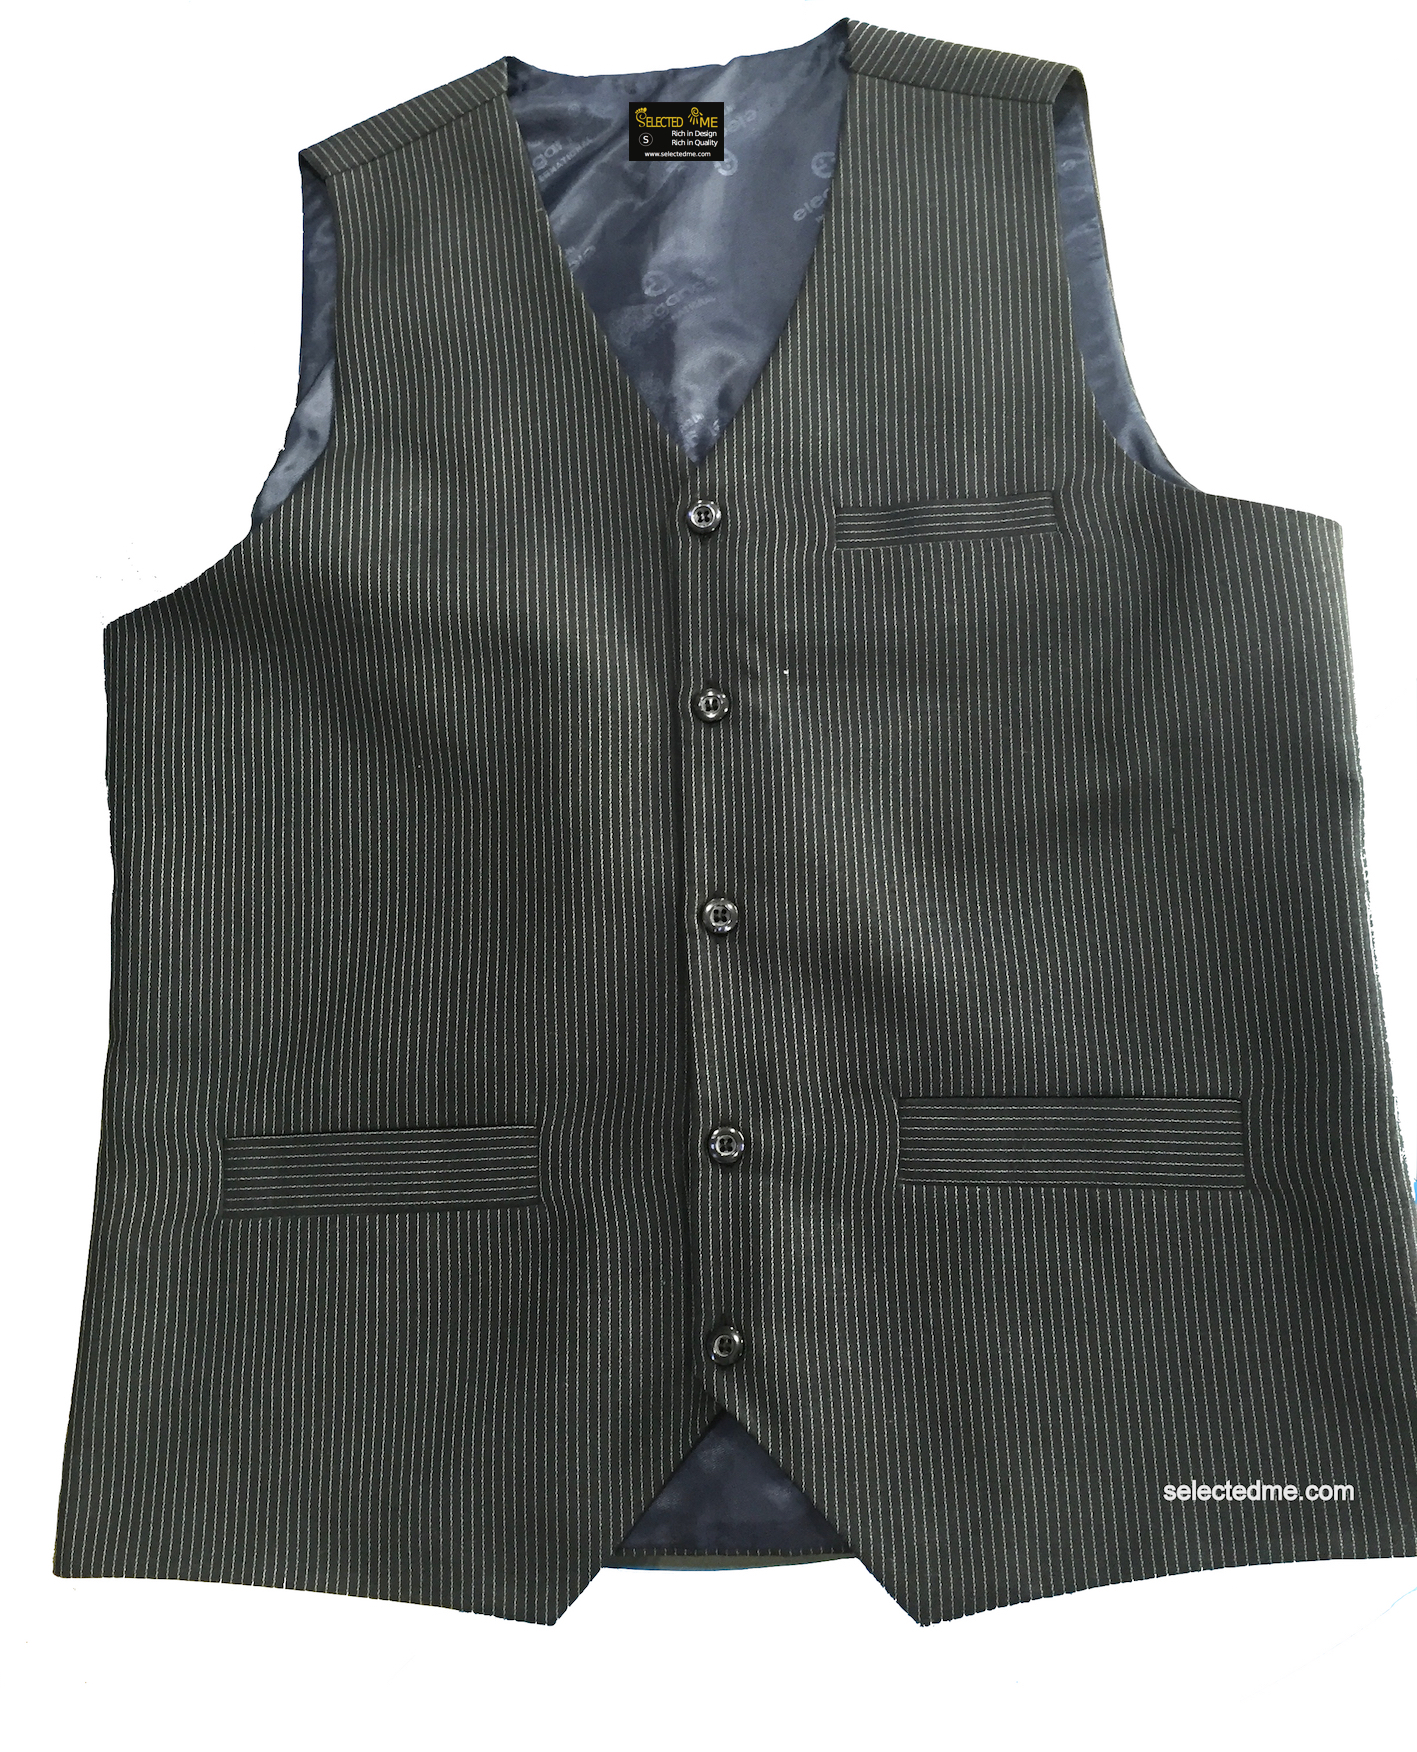 Men 39 s waistcoat uniform designs make custom waistcoats for Office uniform design 2016